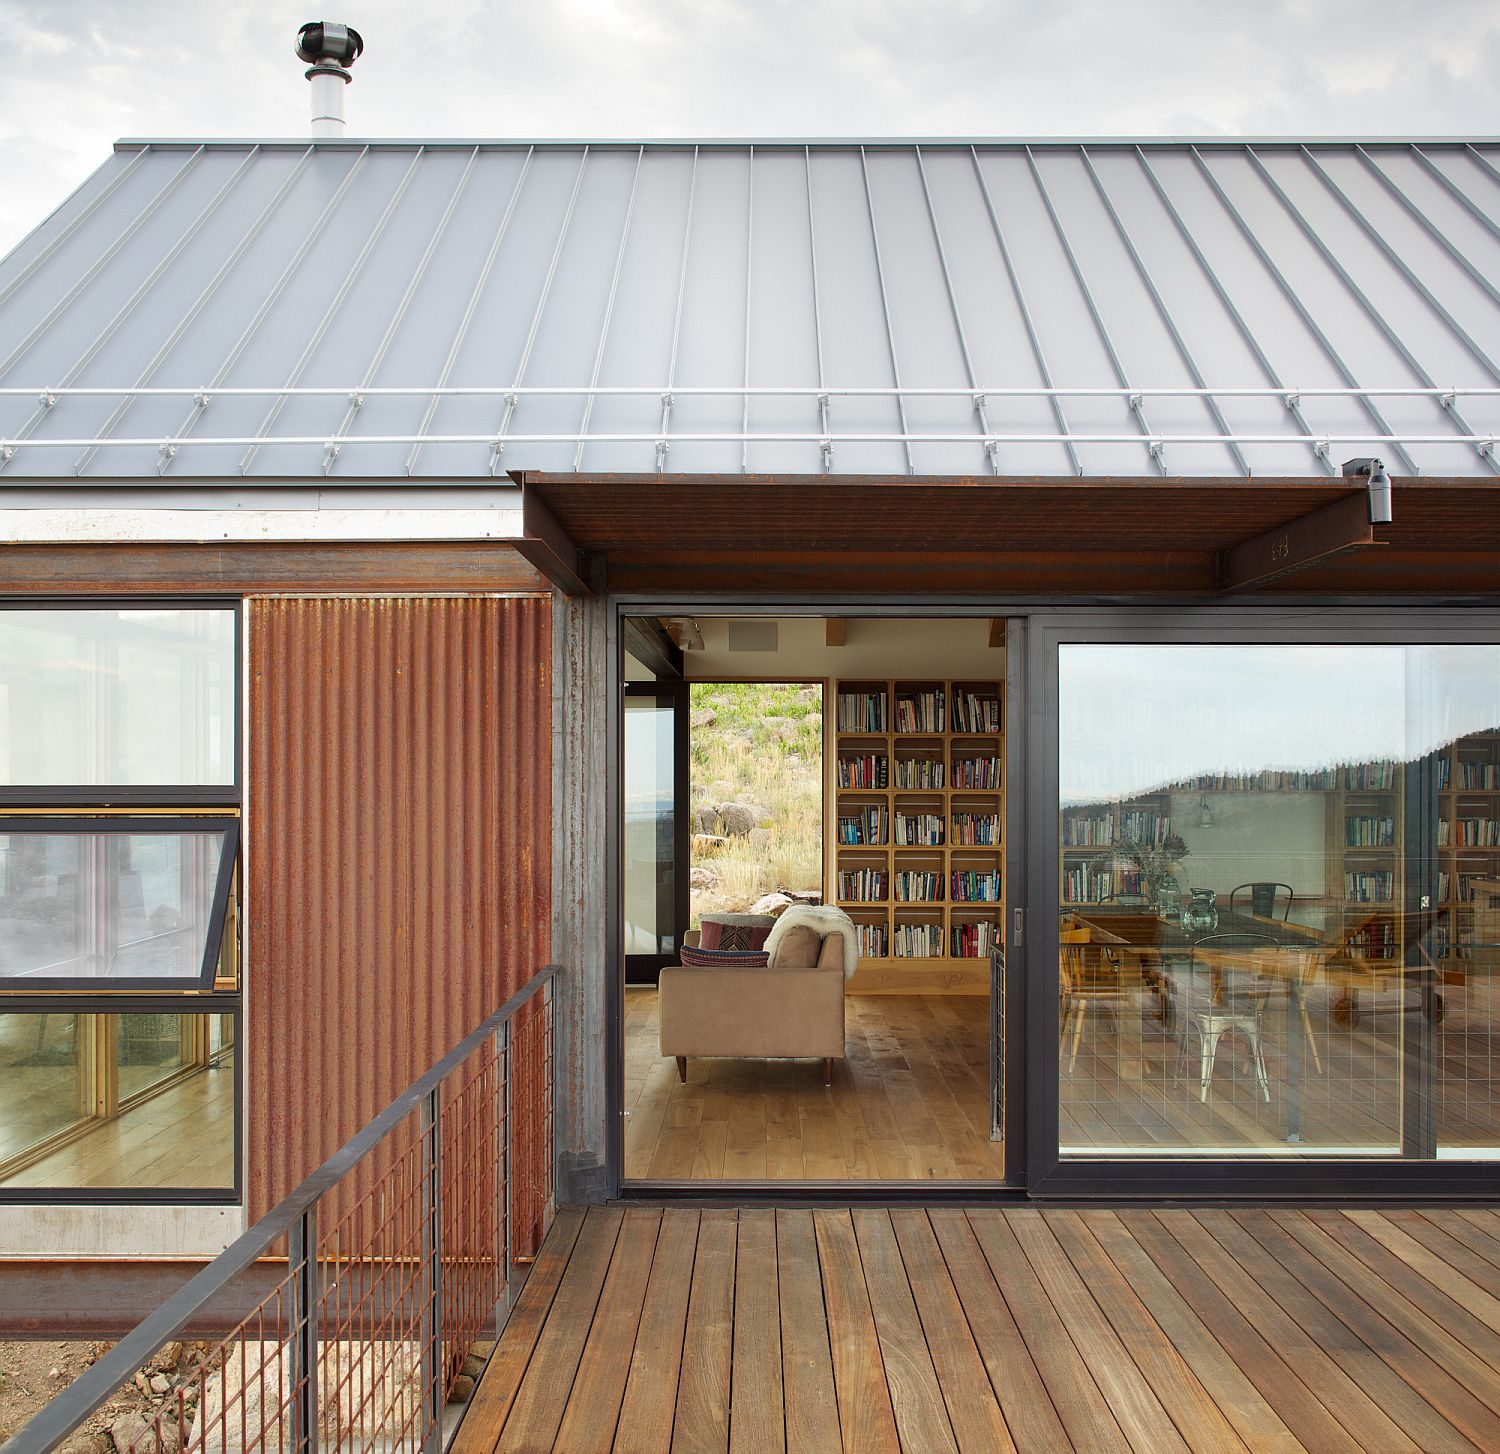 Sliding and framed glass doors connect the living space with the wooden deck at the Sunshine Canyon house